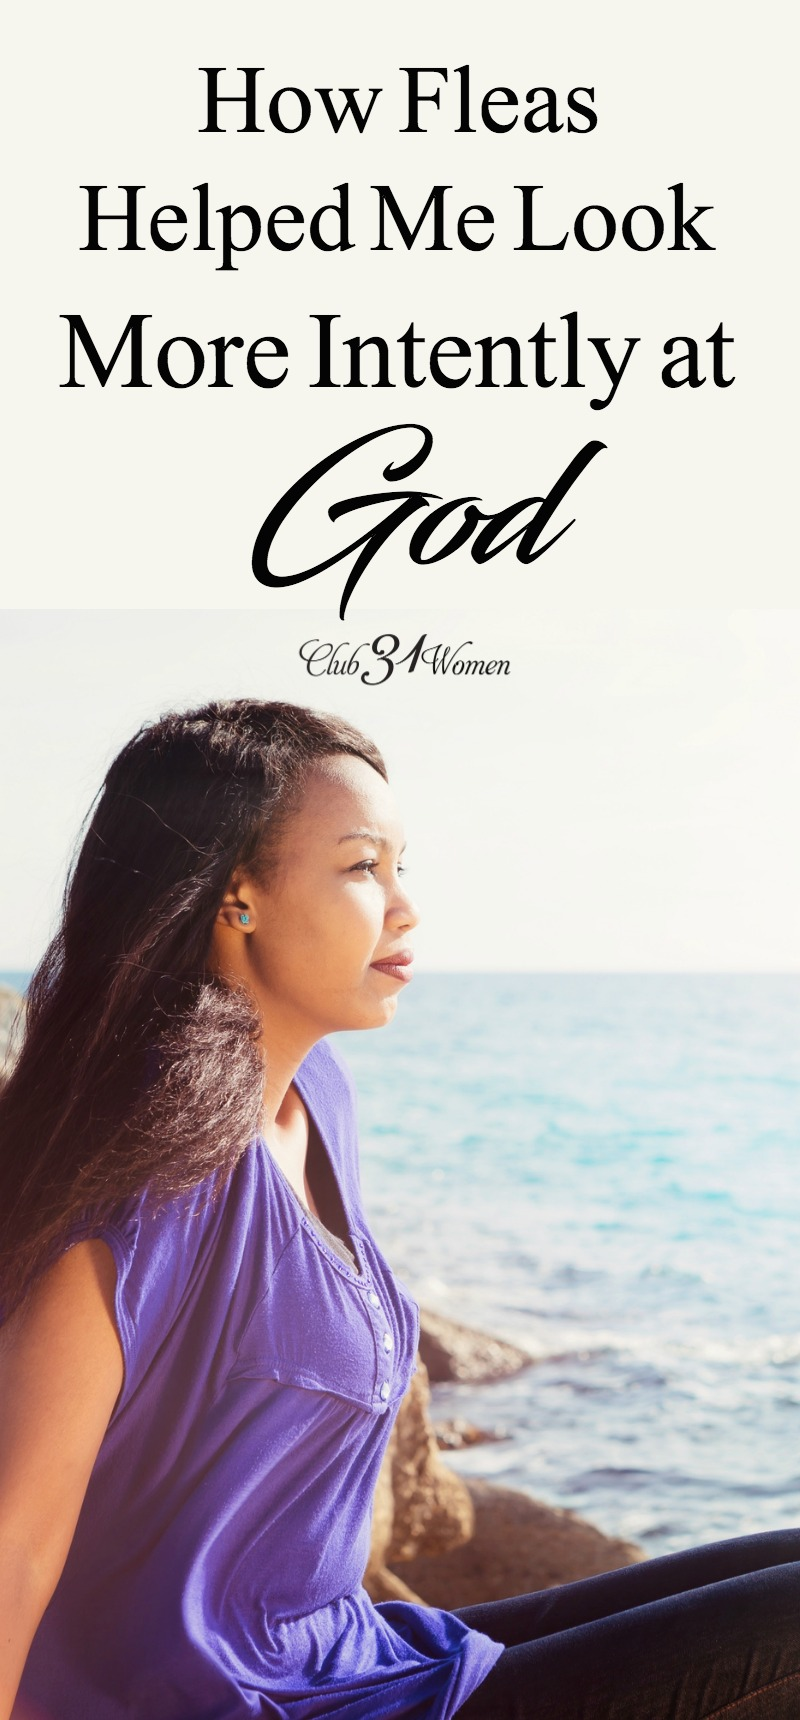 How have you looked more intently at God recently? What circumstances have you been through when you may have needed to do that? Or perhaps you need to do that now? via @Club31Women